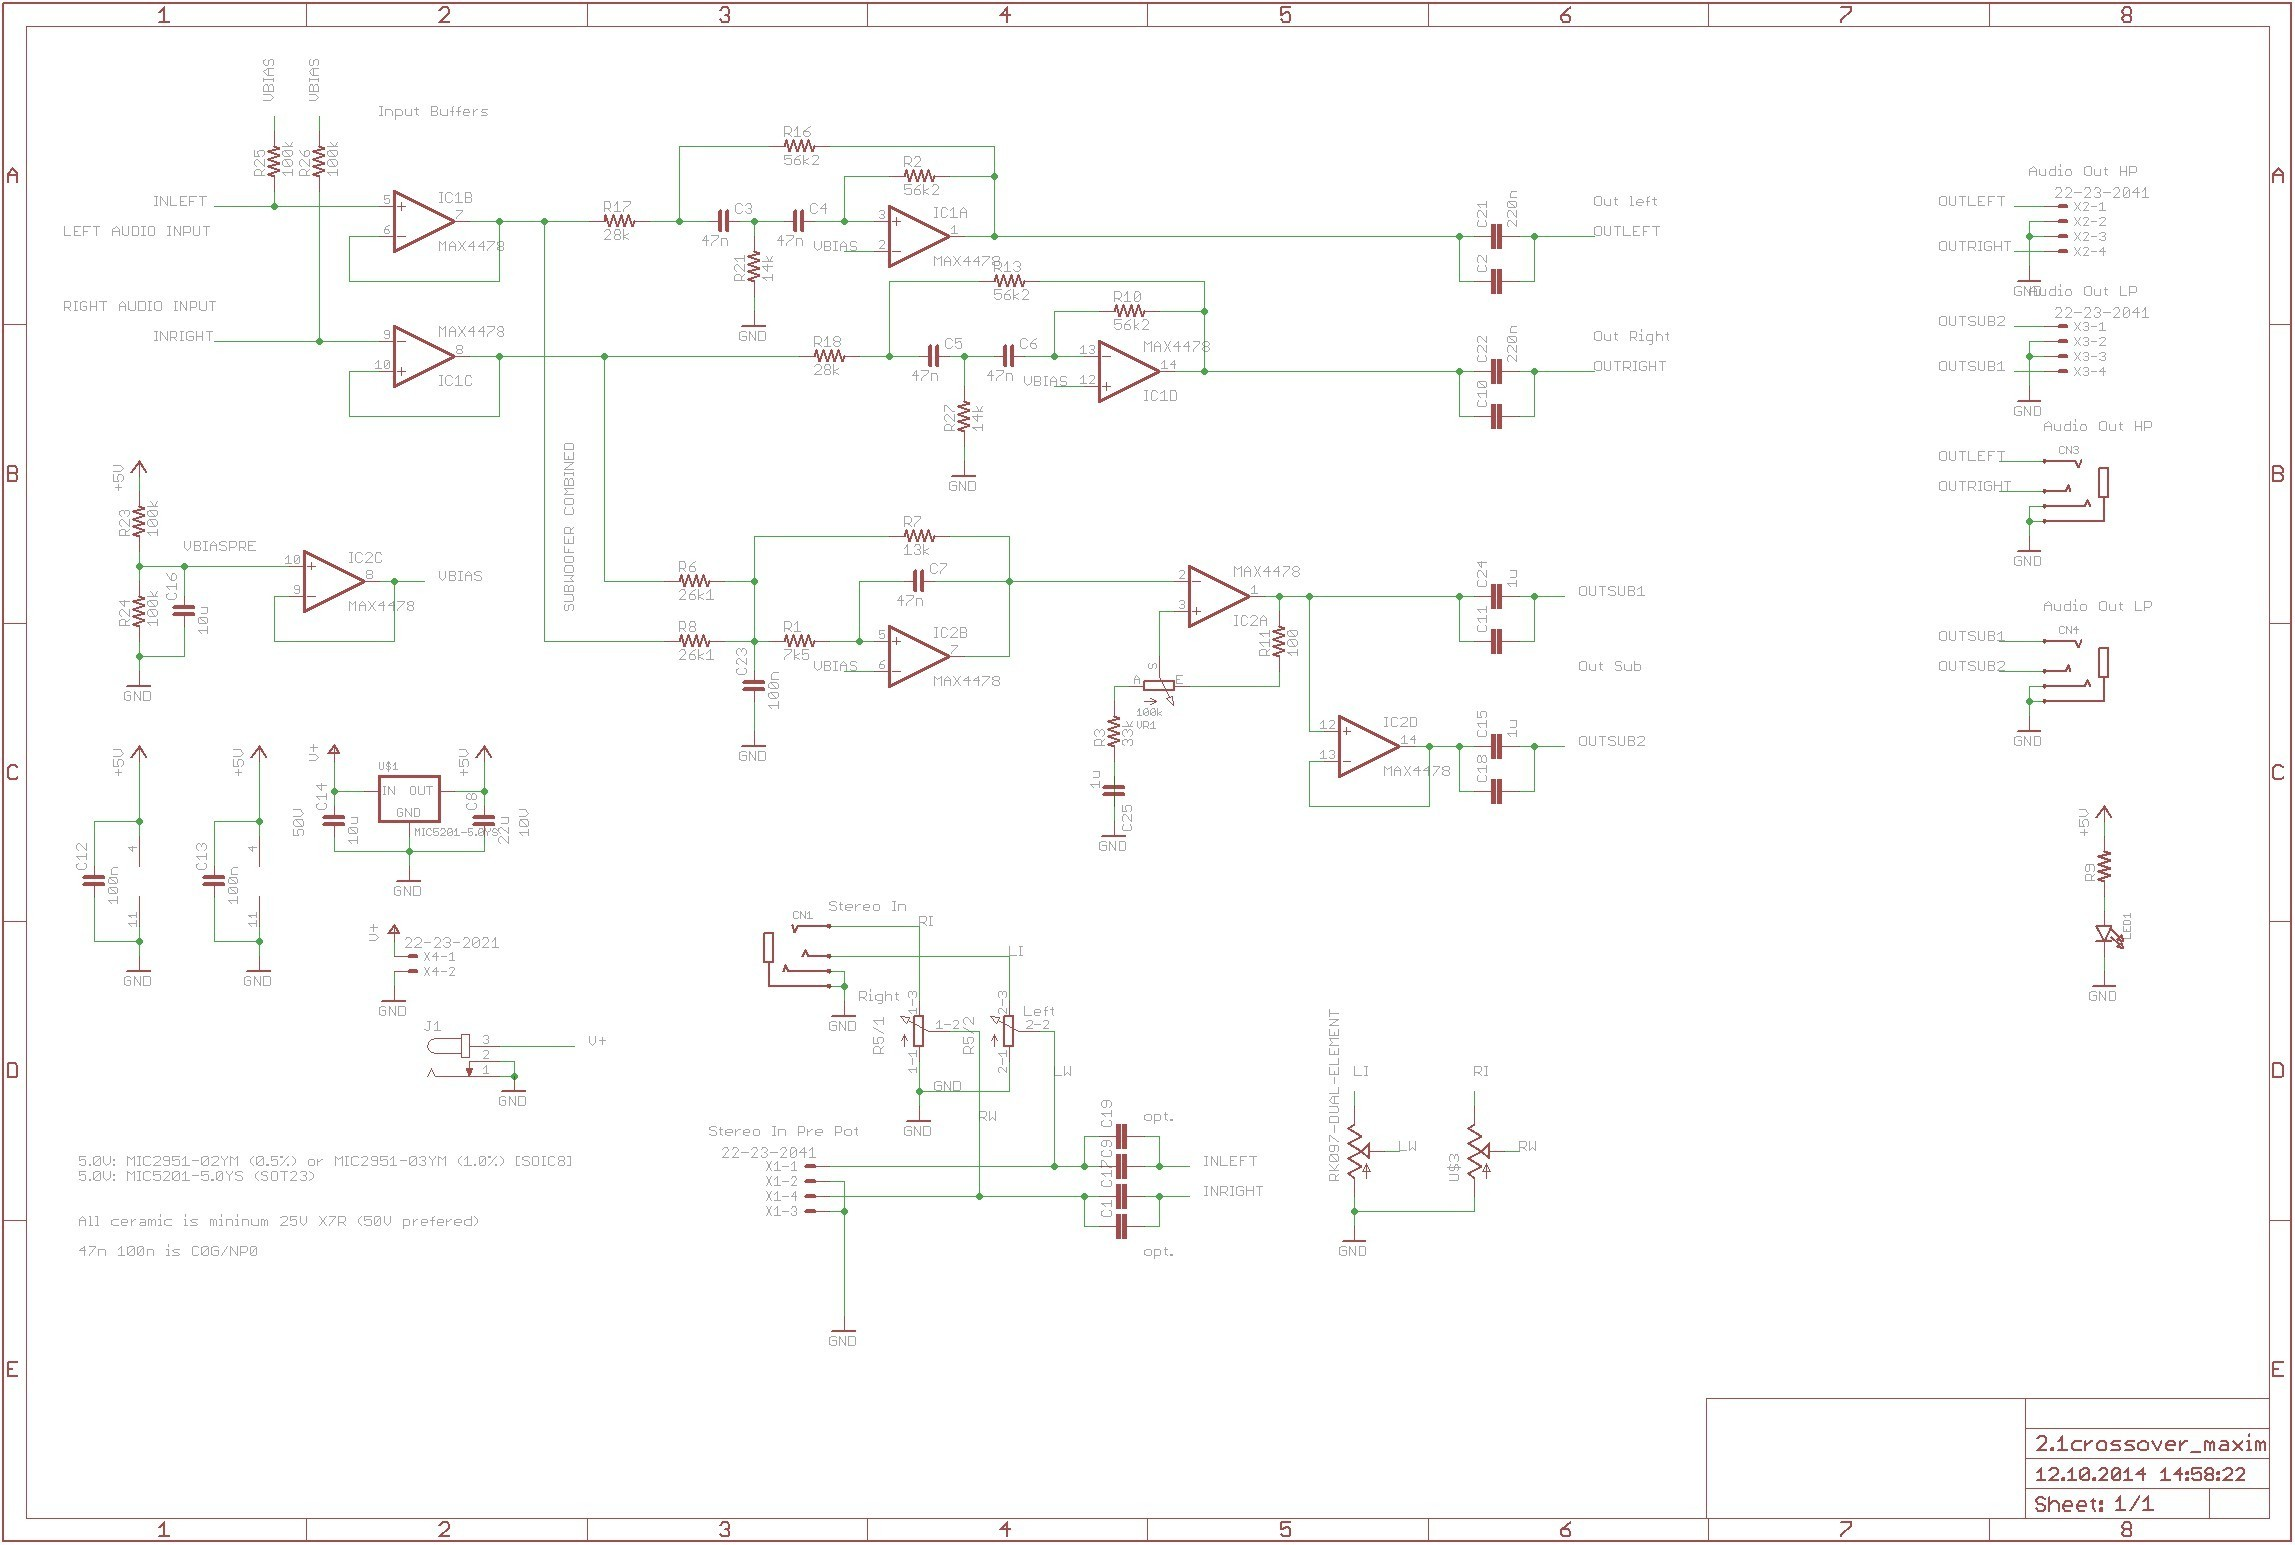 clarion vrx755vd wiring diagram Collection Aktive Crossoverfrequenzweiche Mit Max4478 360customs Crossover Schematic Rev 0d wiring